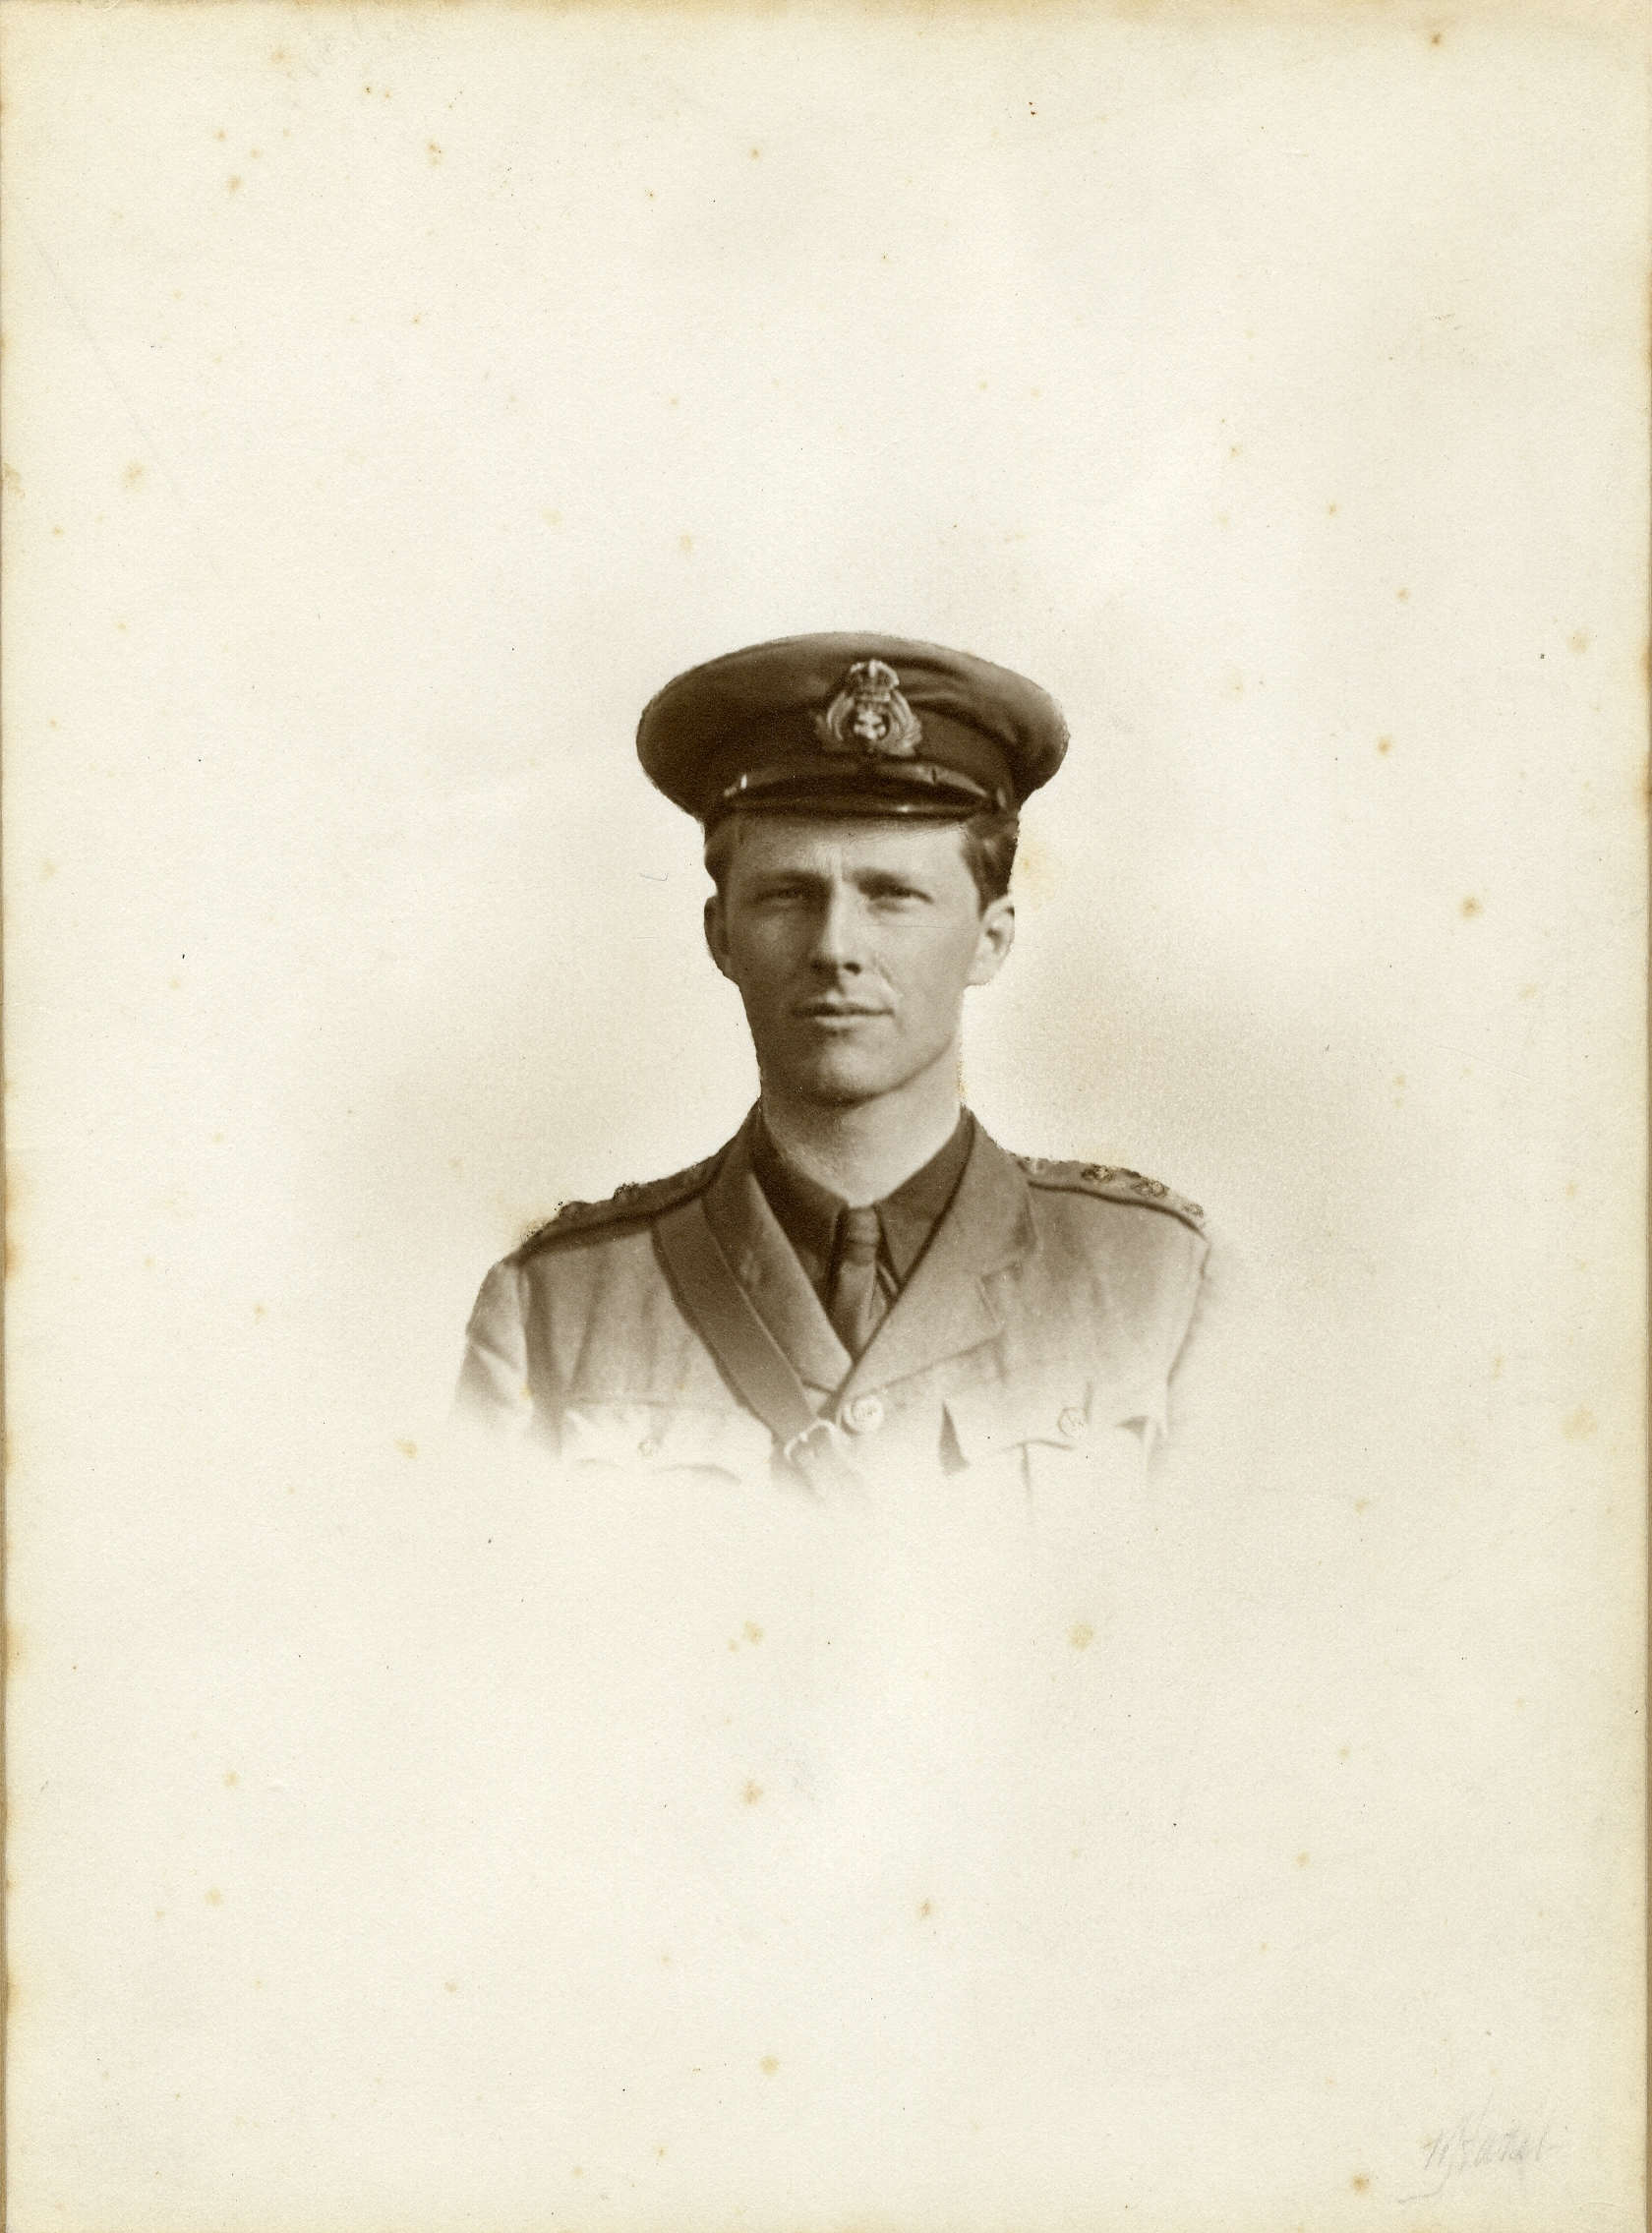 Rupert Brooke papers used as a case study for archives intro